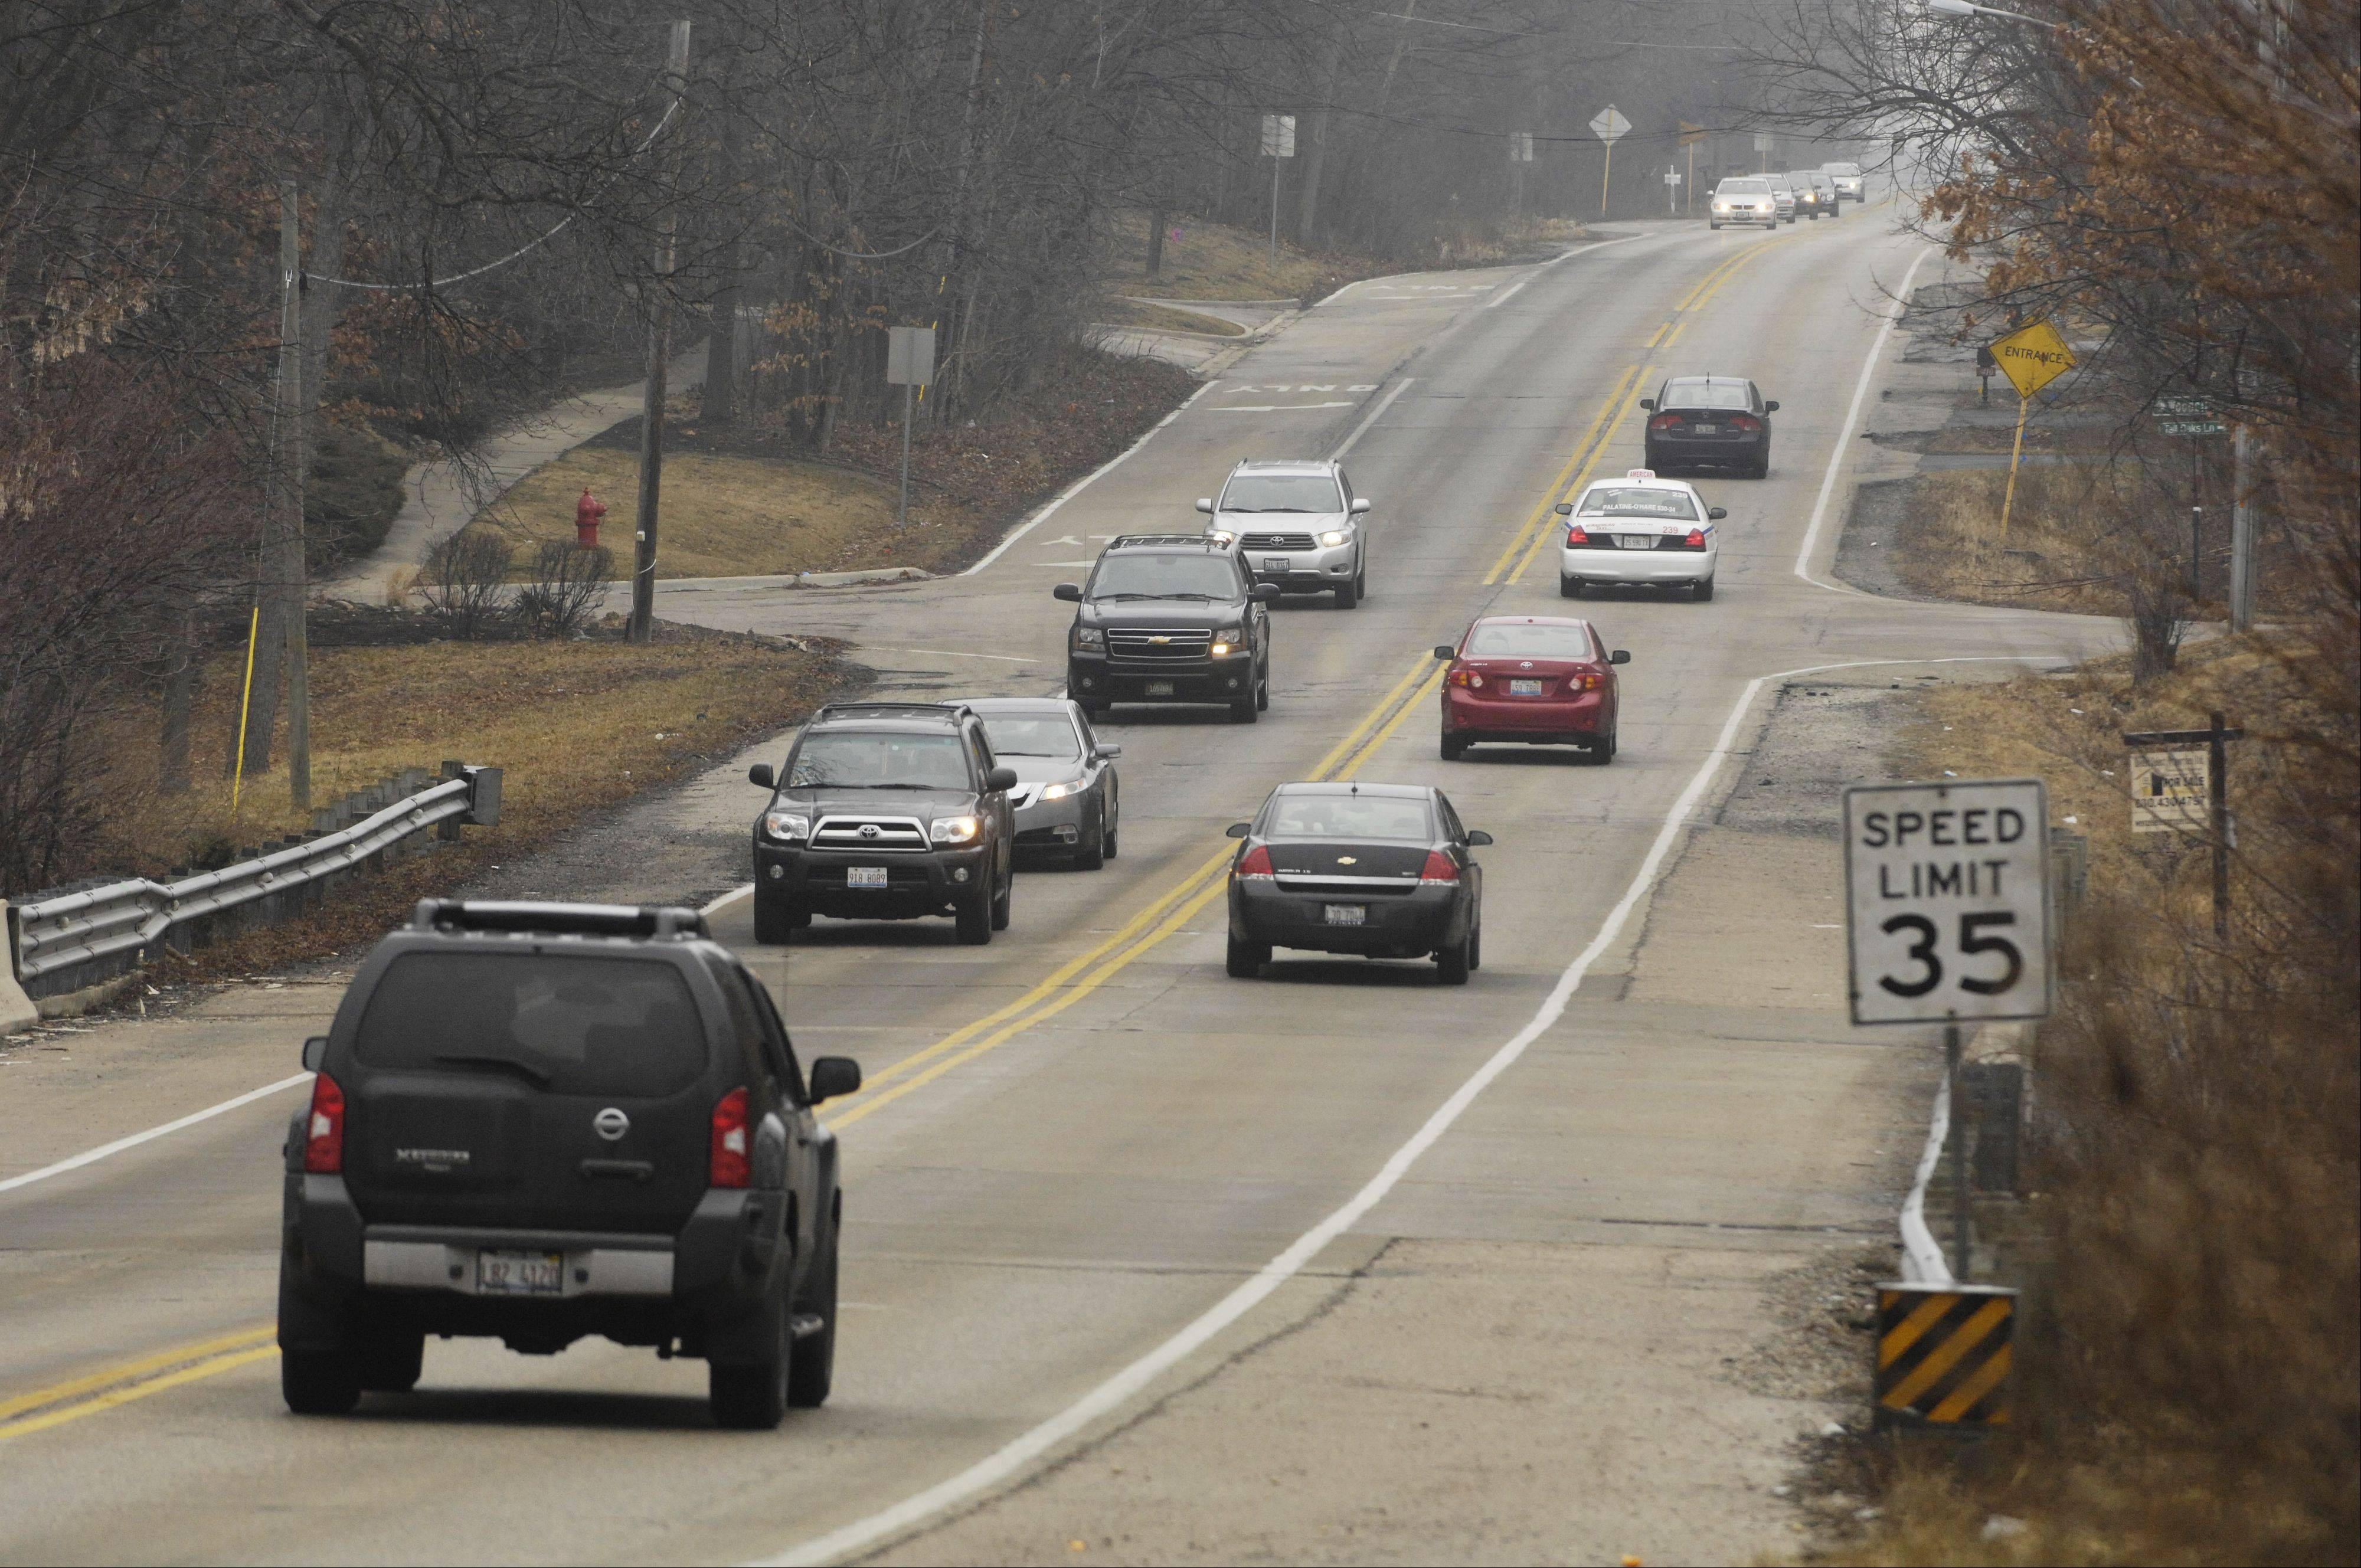 Rolling Meadows is discussing plans for widening Meacham Road, increasing the number of lanes between Emerson Avenue and Algonquin Road, but some residents don't want any widening at all.